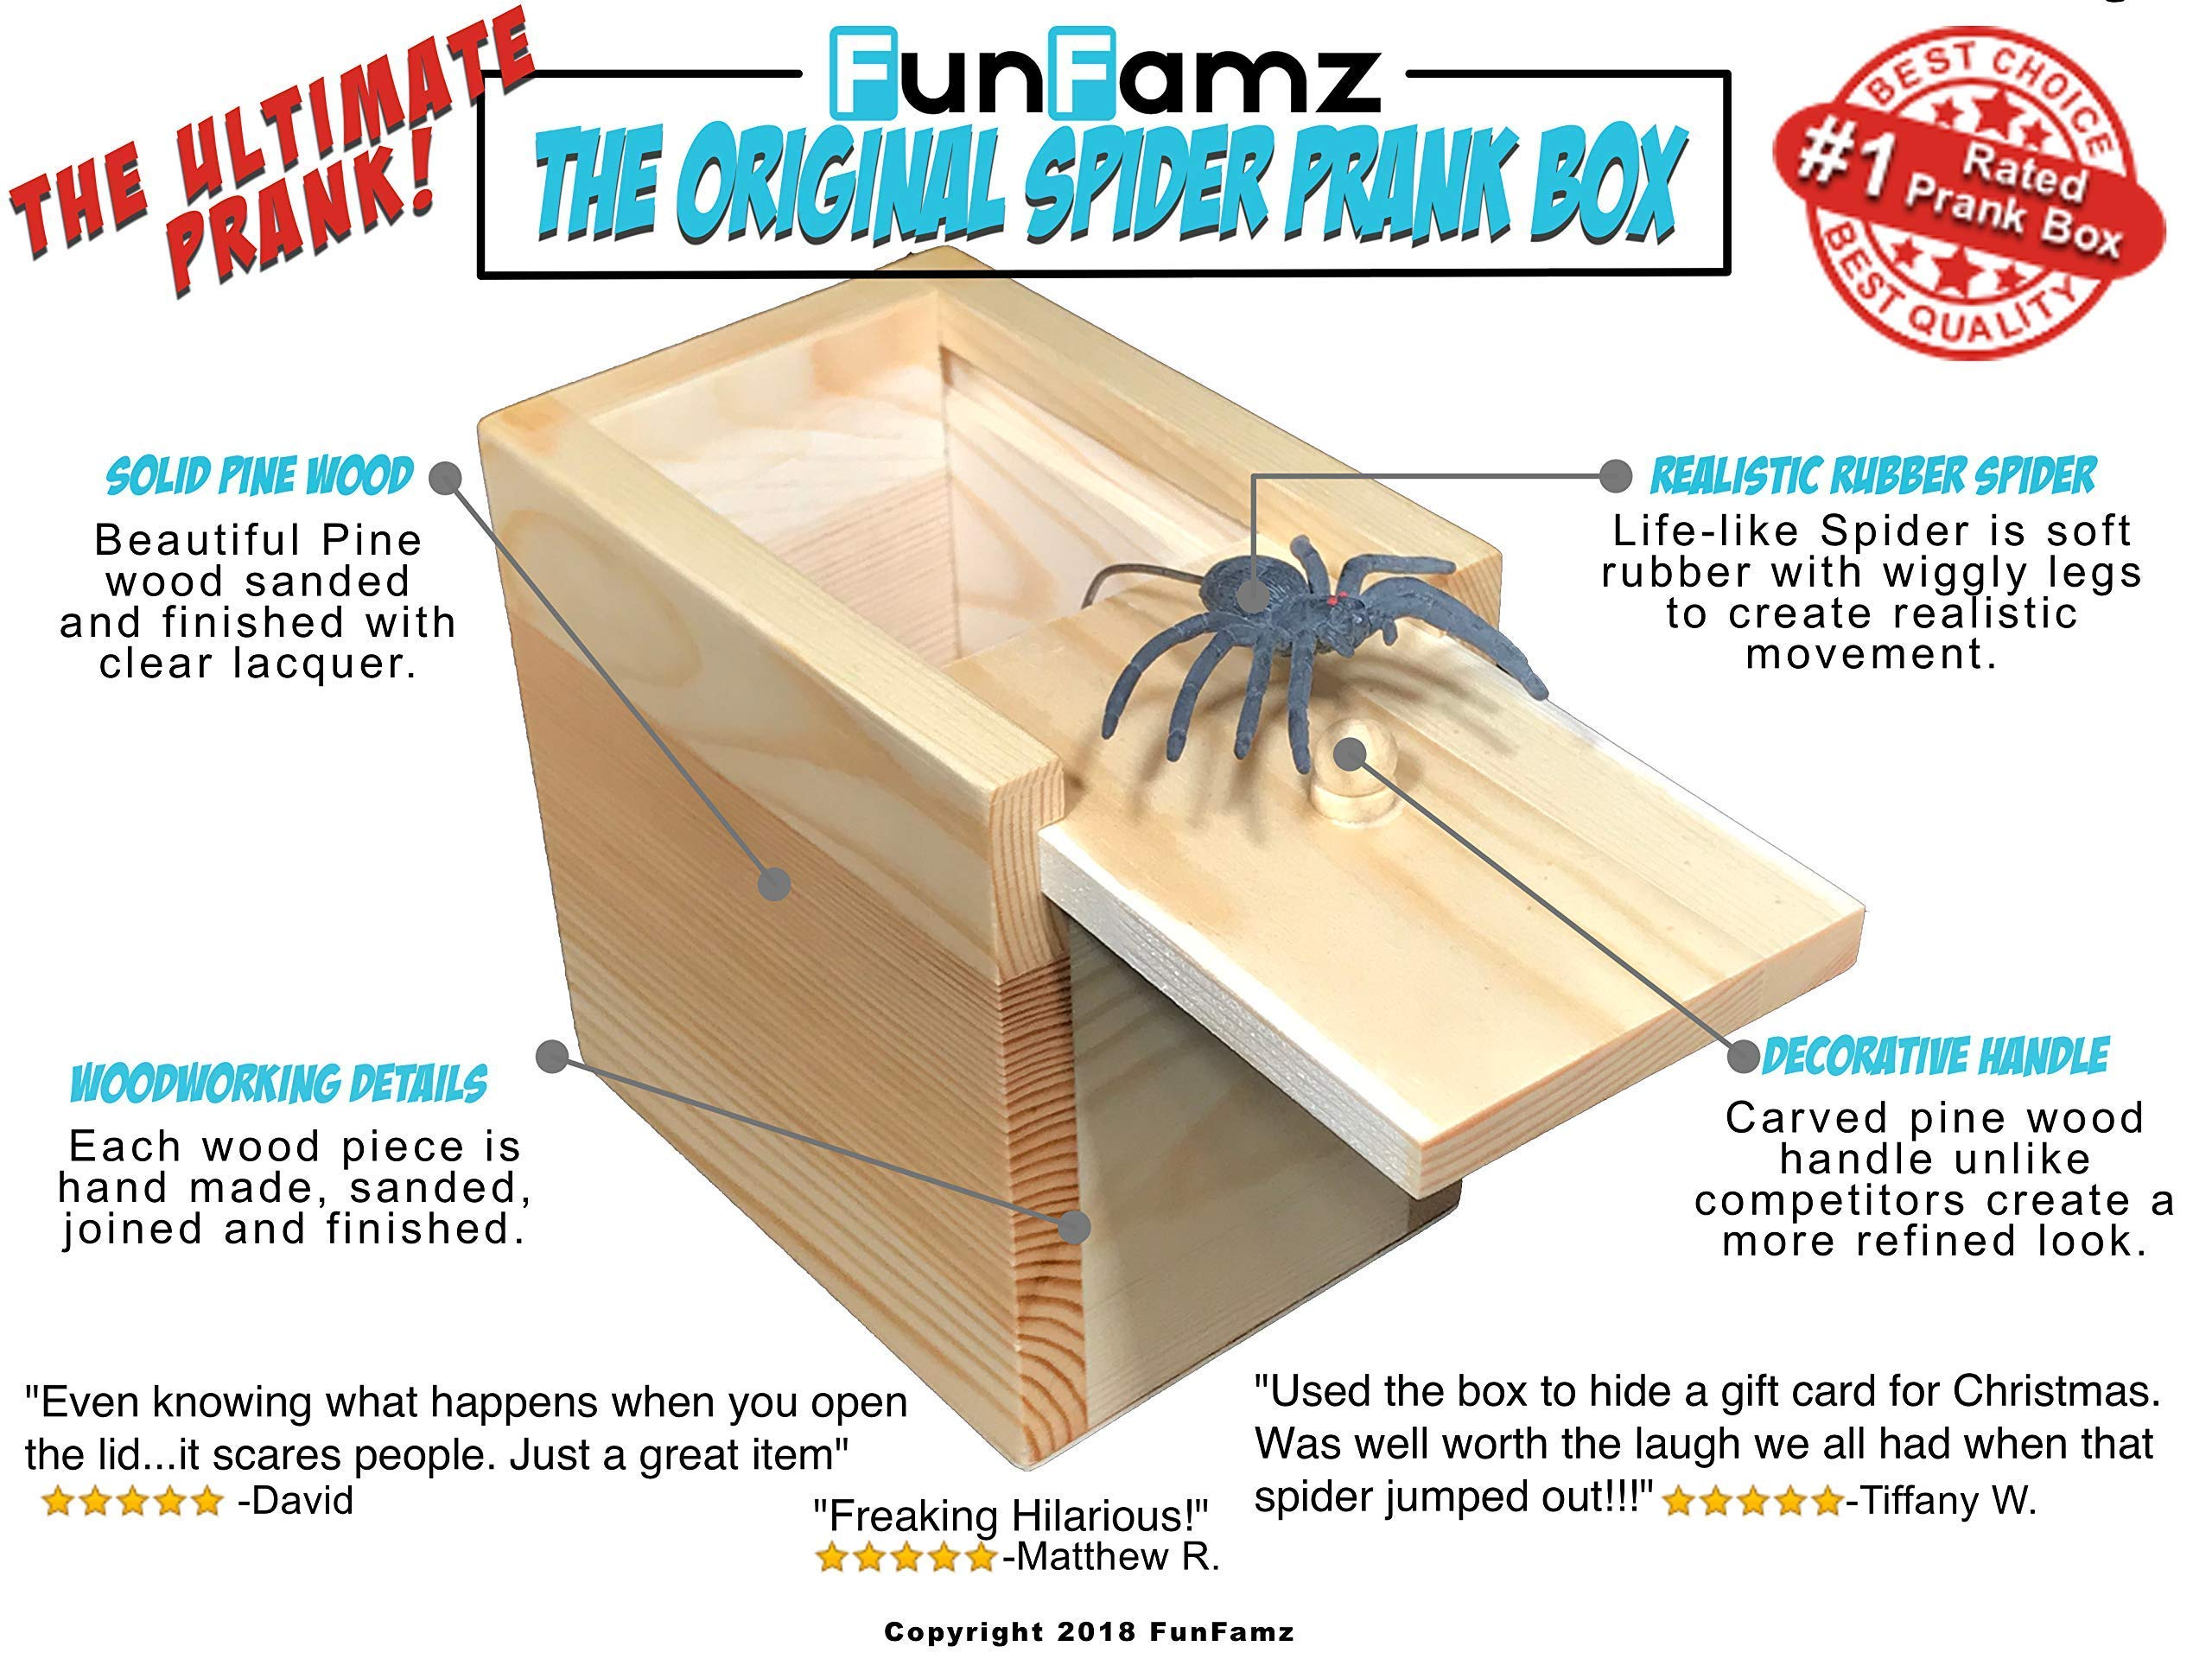 The Original Spider Prank Box- Hilarious Wooden Box Toy Prank, Funny Money Gift Box Surprise Toy, and Christmas Gag Gift Prank for Boys, Girls, Adults by FunFamz by FunFamz (Image #2)